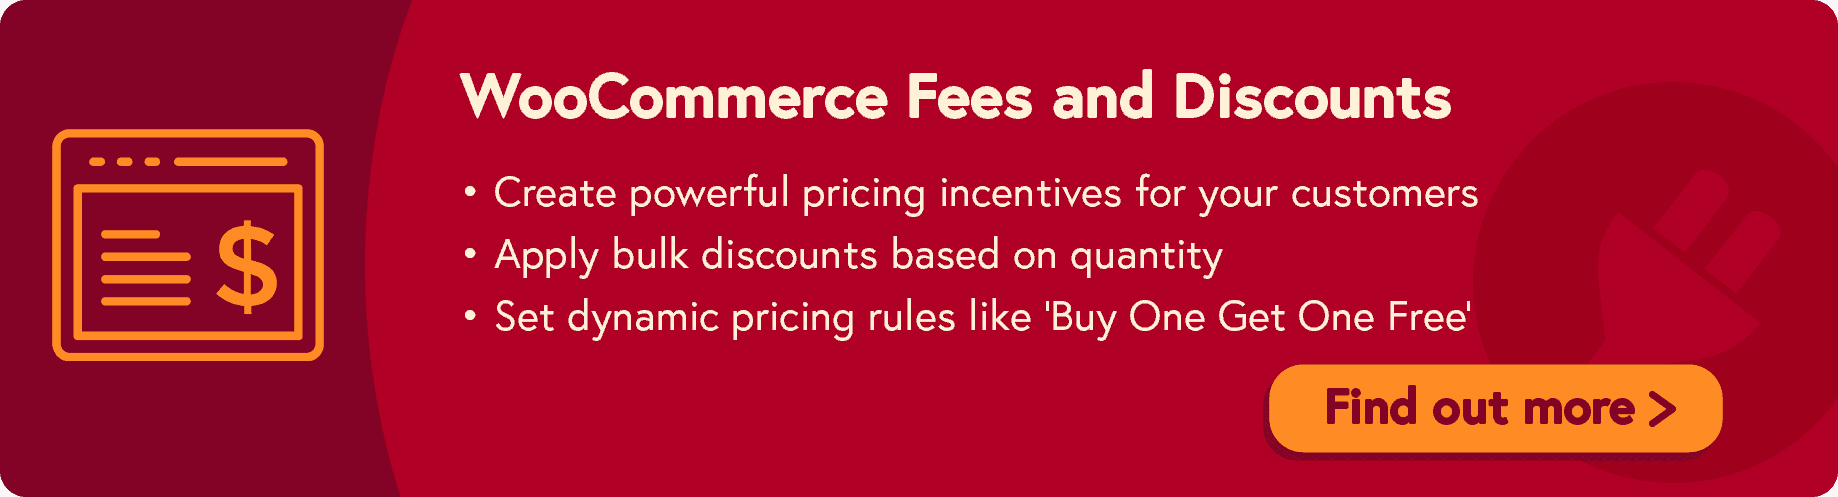 Get Order Total Without Fees And Discounts In Woocommerce